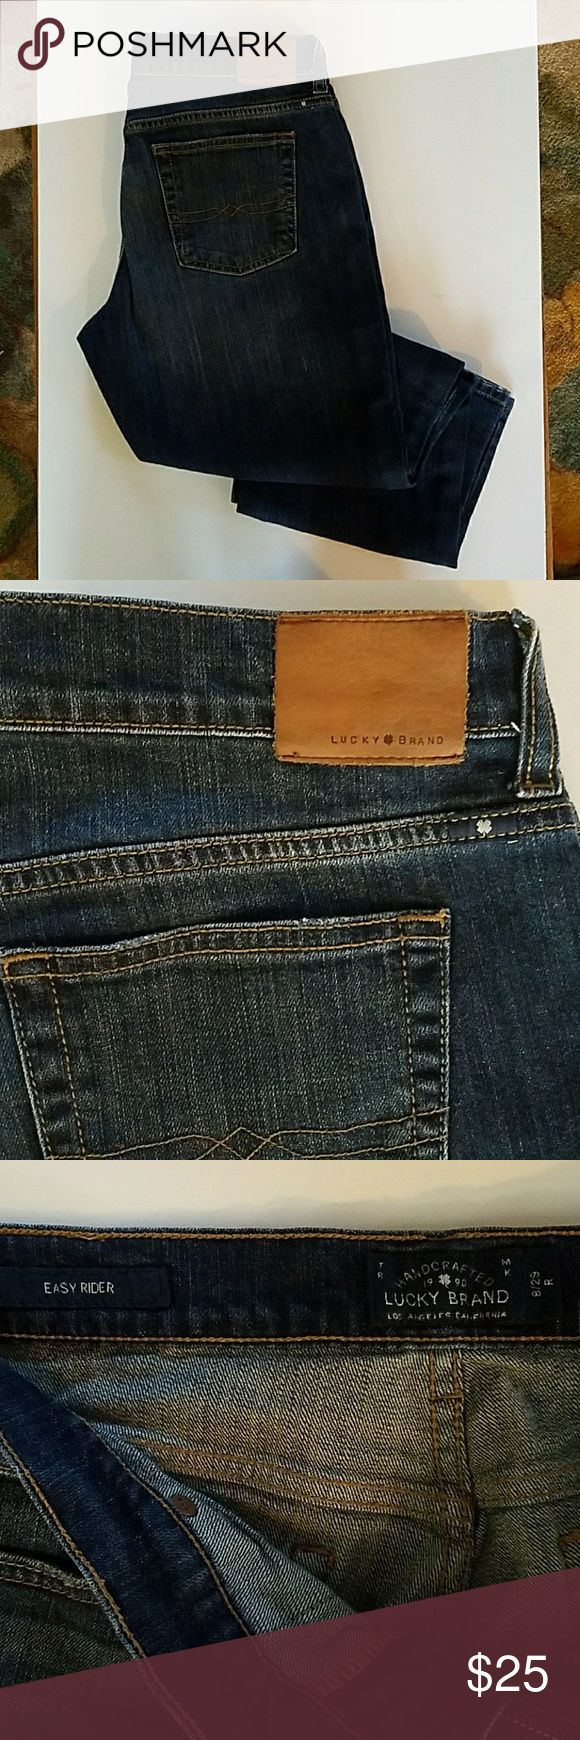 "Lucky Brand Easy Rider Jeans The ultimate weekend jean.  Approx 15.5"" across, 9"" rise, 31"" inseam. Lucky Brand Jeans Boyfriend"